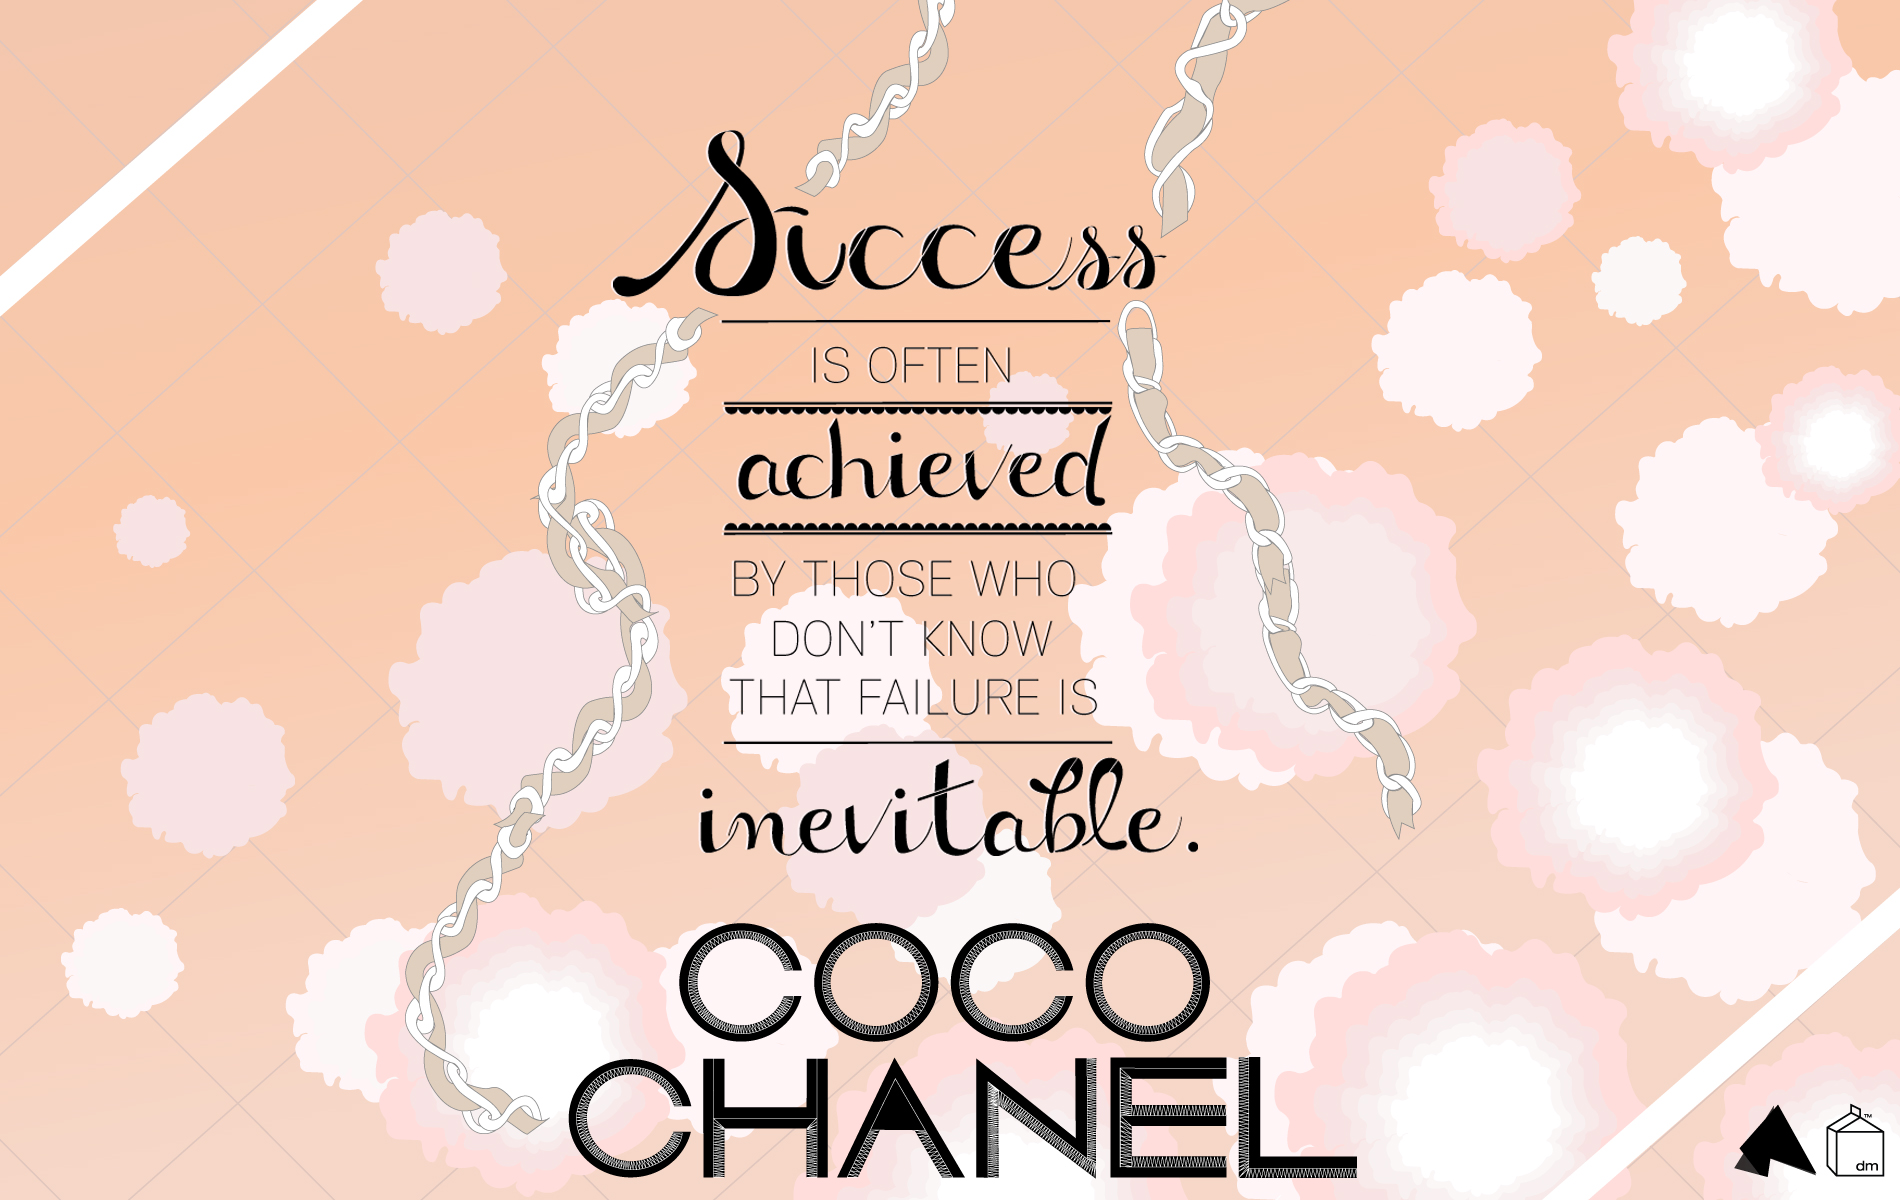 Chanel Quotes Desktop Wallpaper QuotesGram 1900x1200